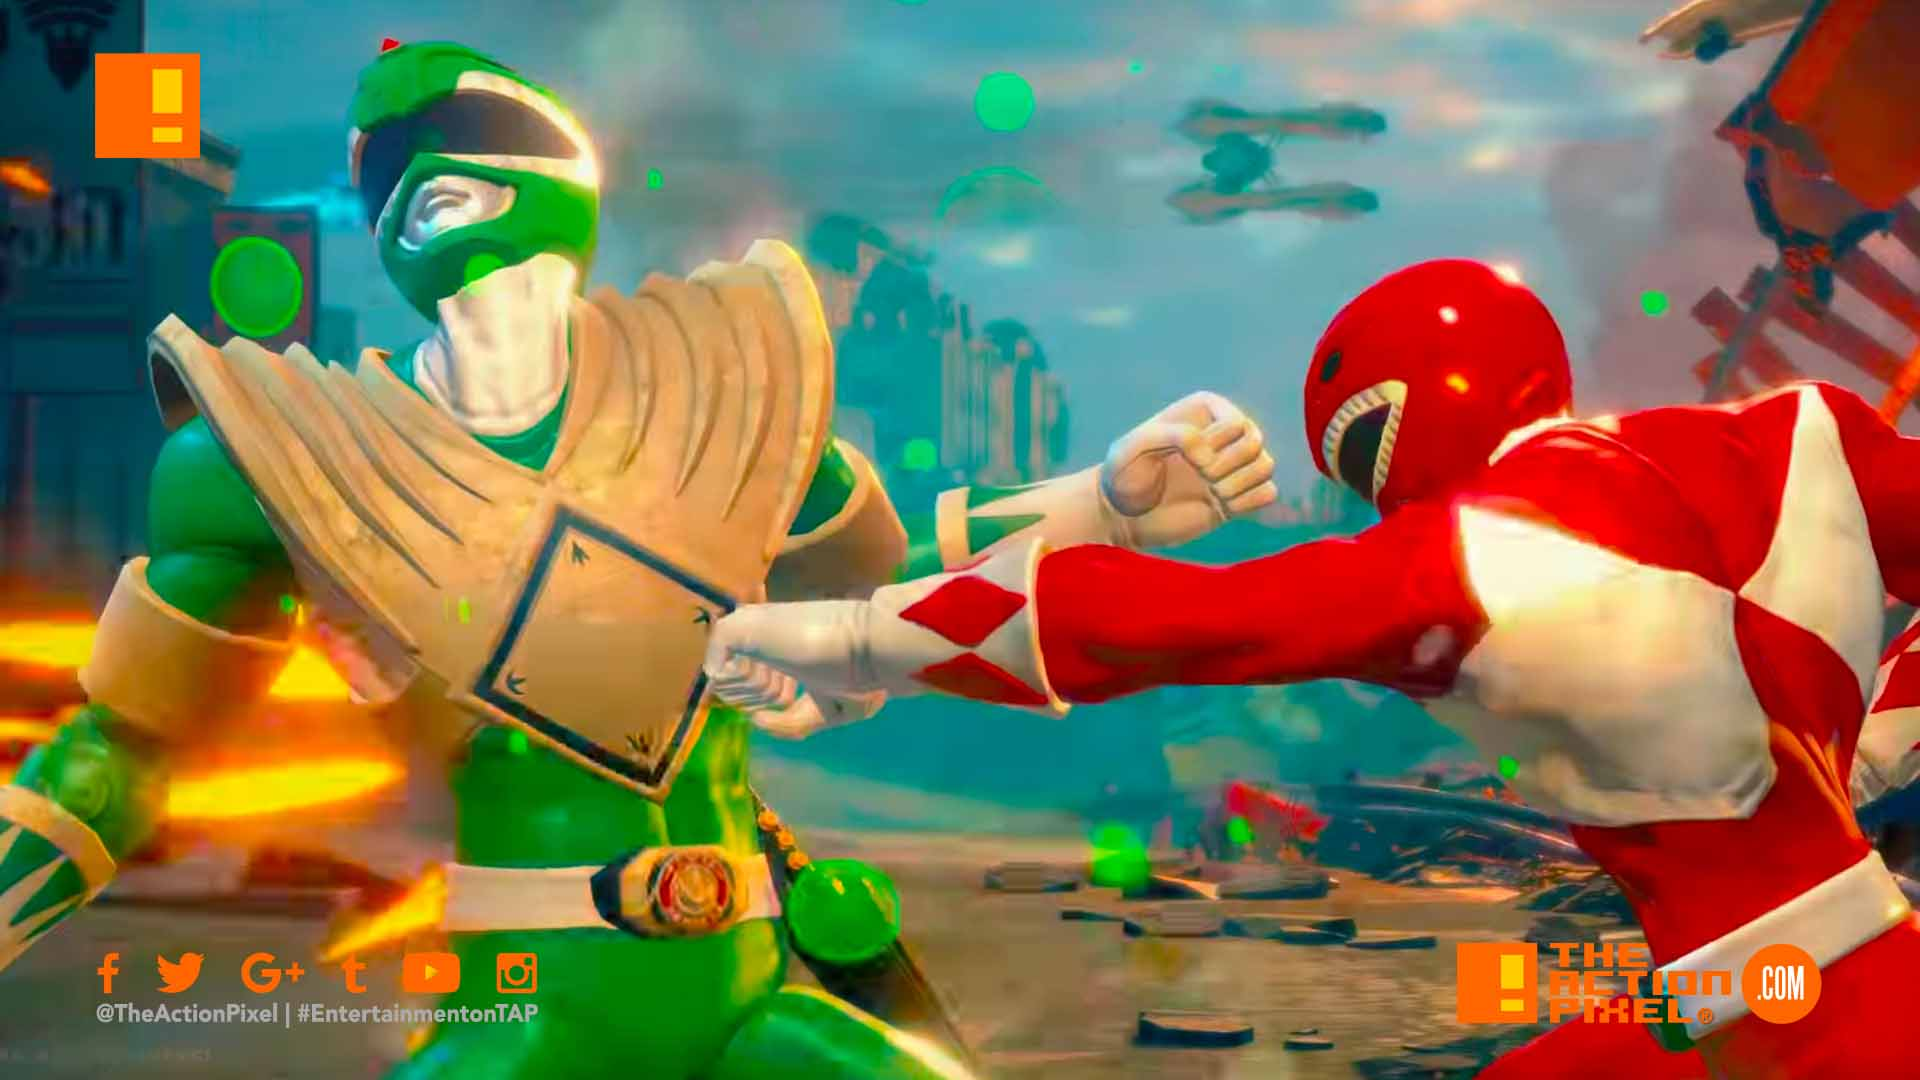 Power rangers, battle for the grid, power rangers: battle for the grid, green ranger, jason david frank , announcement trailer, green ranger, the action pixel, entertainment on tap